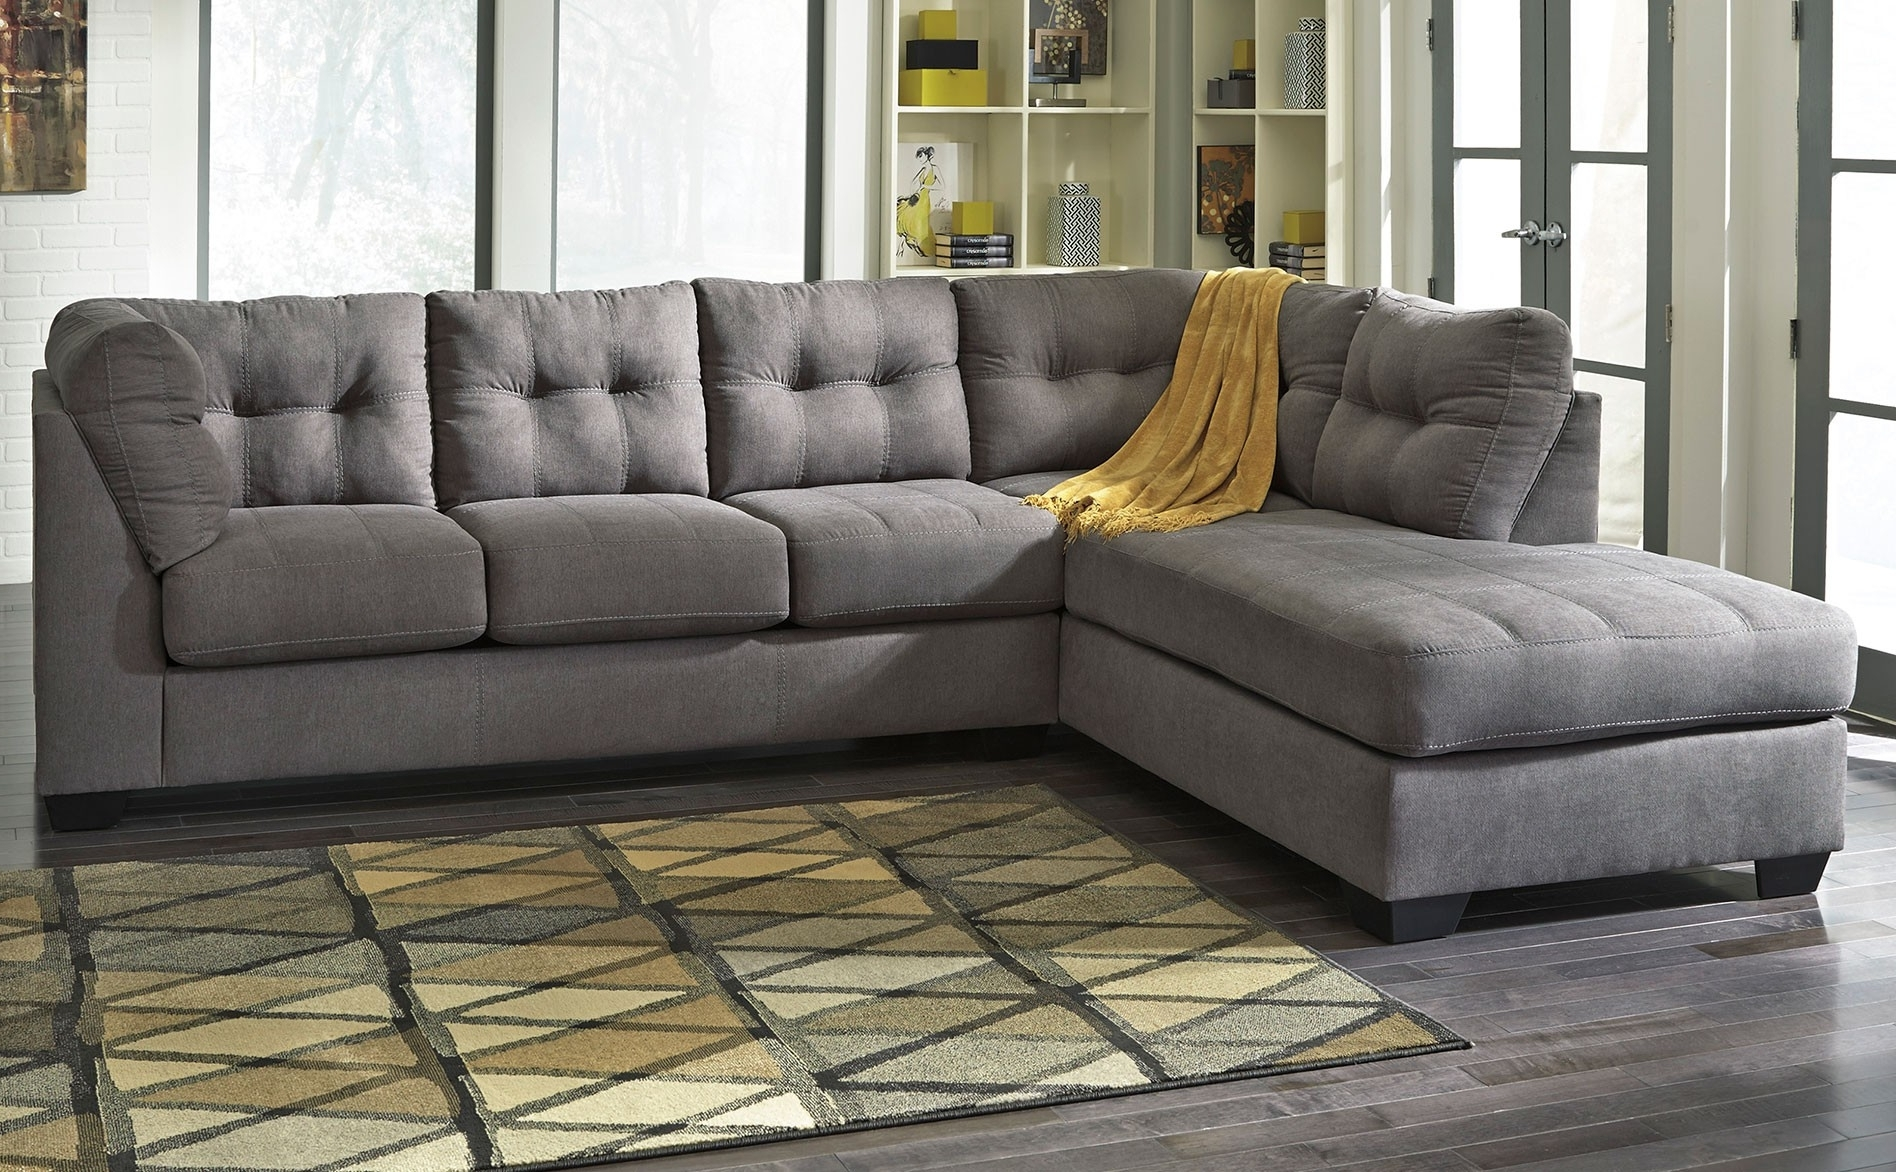 Famous Light Grey Sectional Sofa Waverunner Modular Divani Casa Quebec Intended For Quebec Sectional Sofas (View 5 of 15)